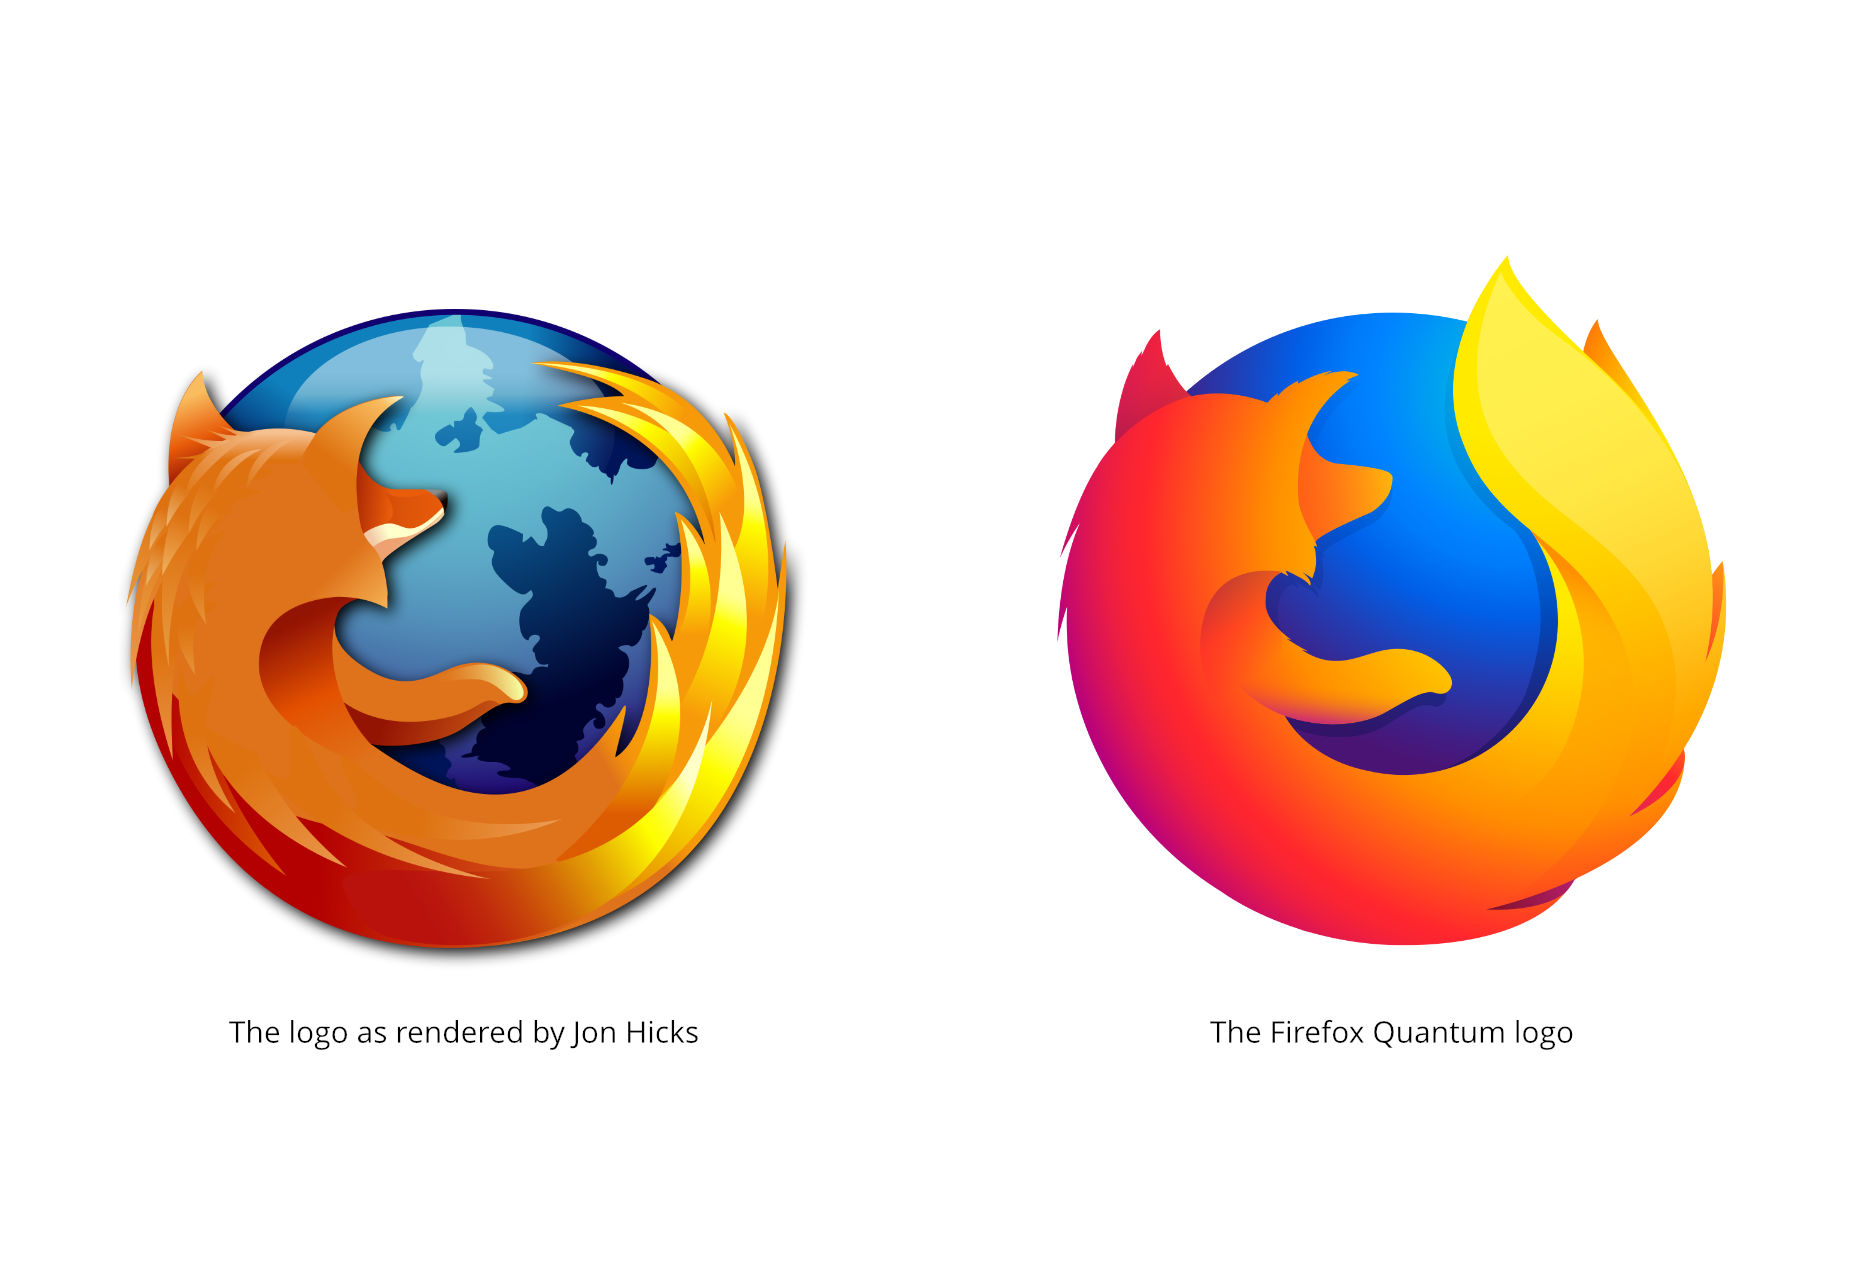 Firefox Working on a Rebrand